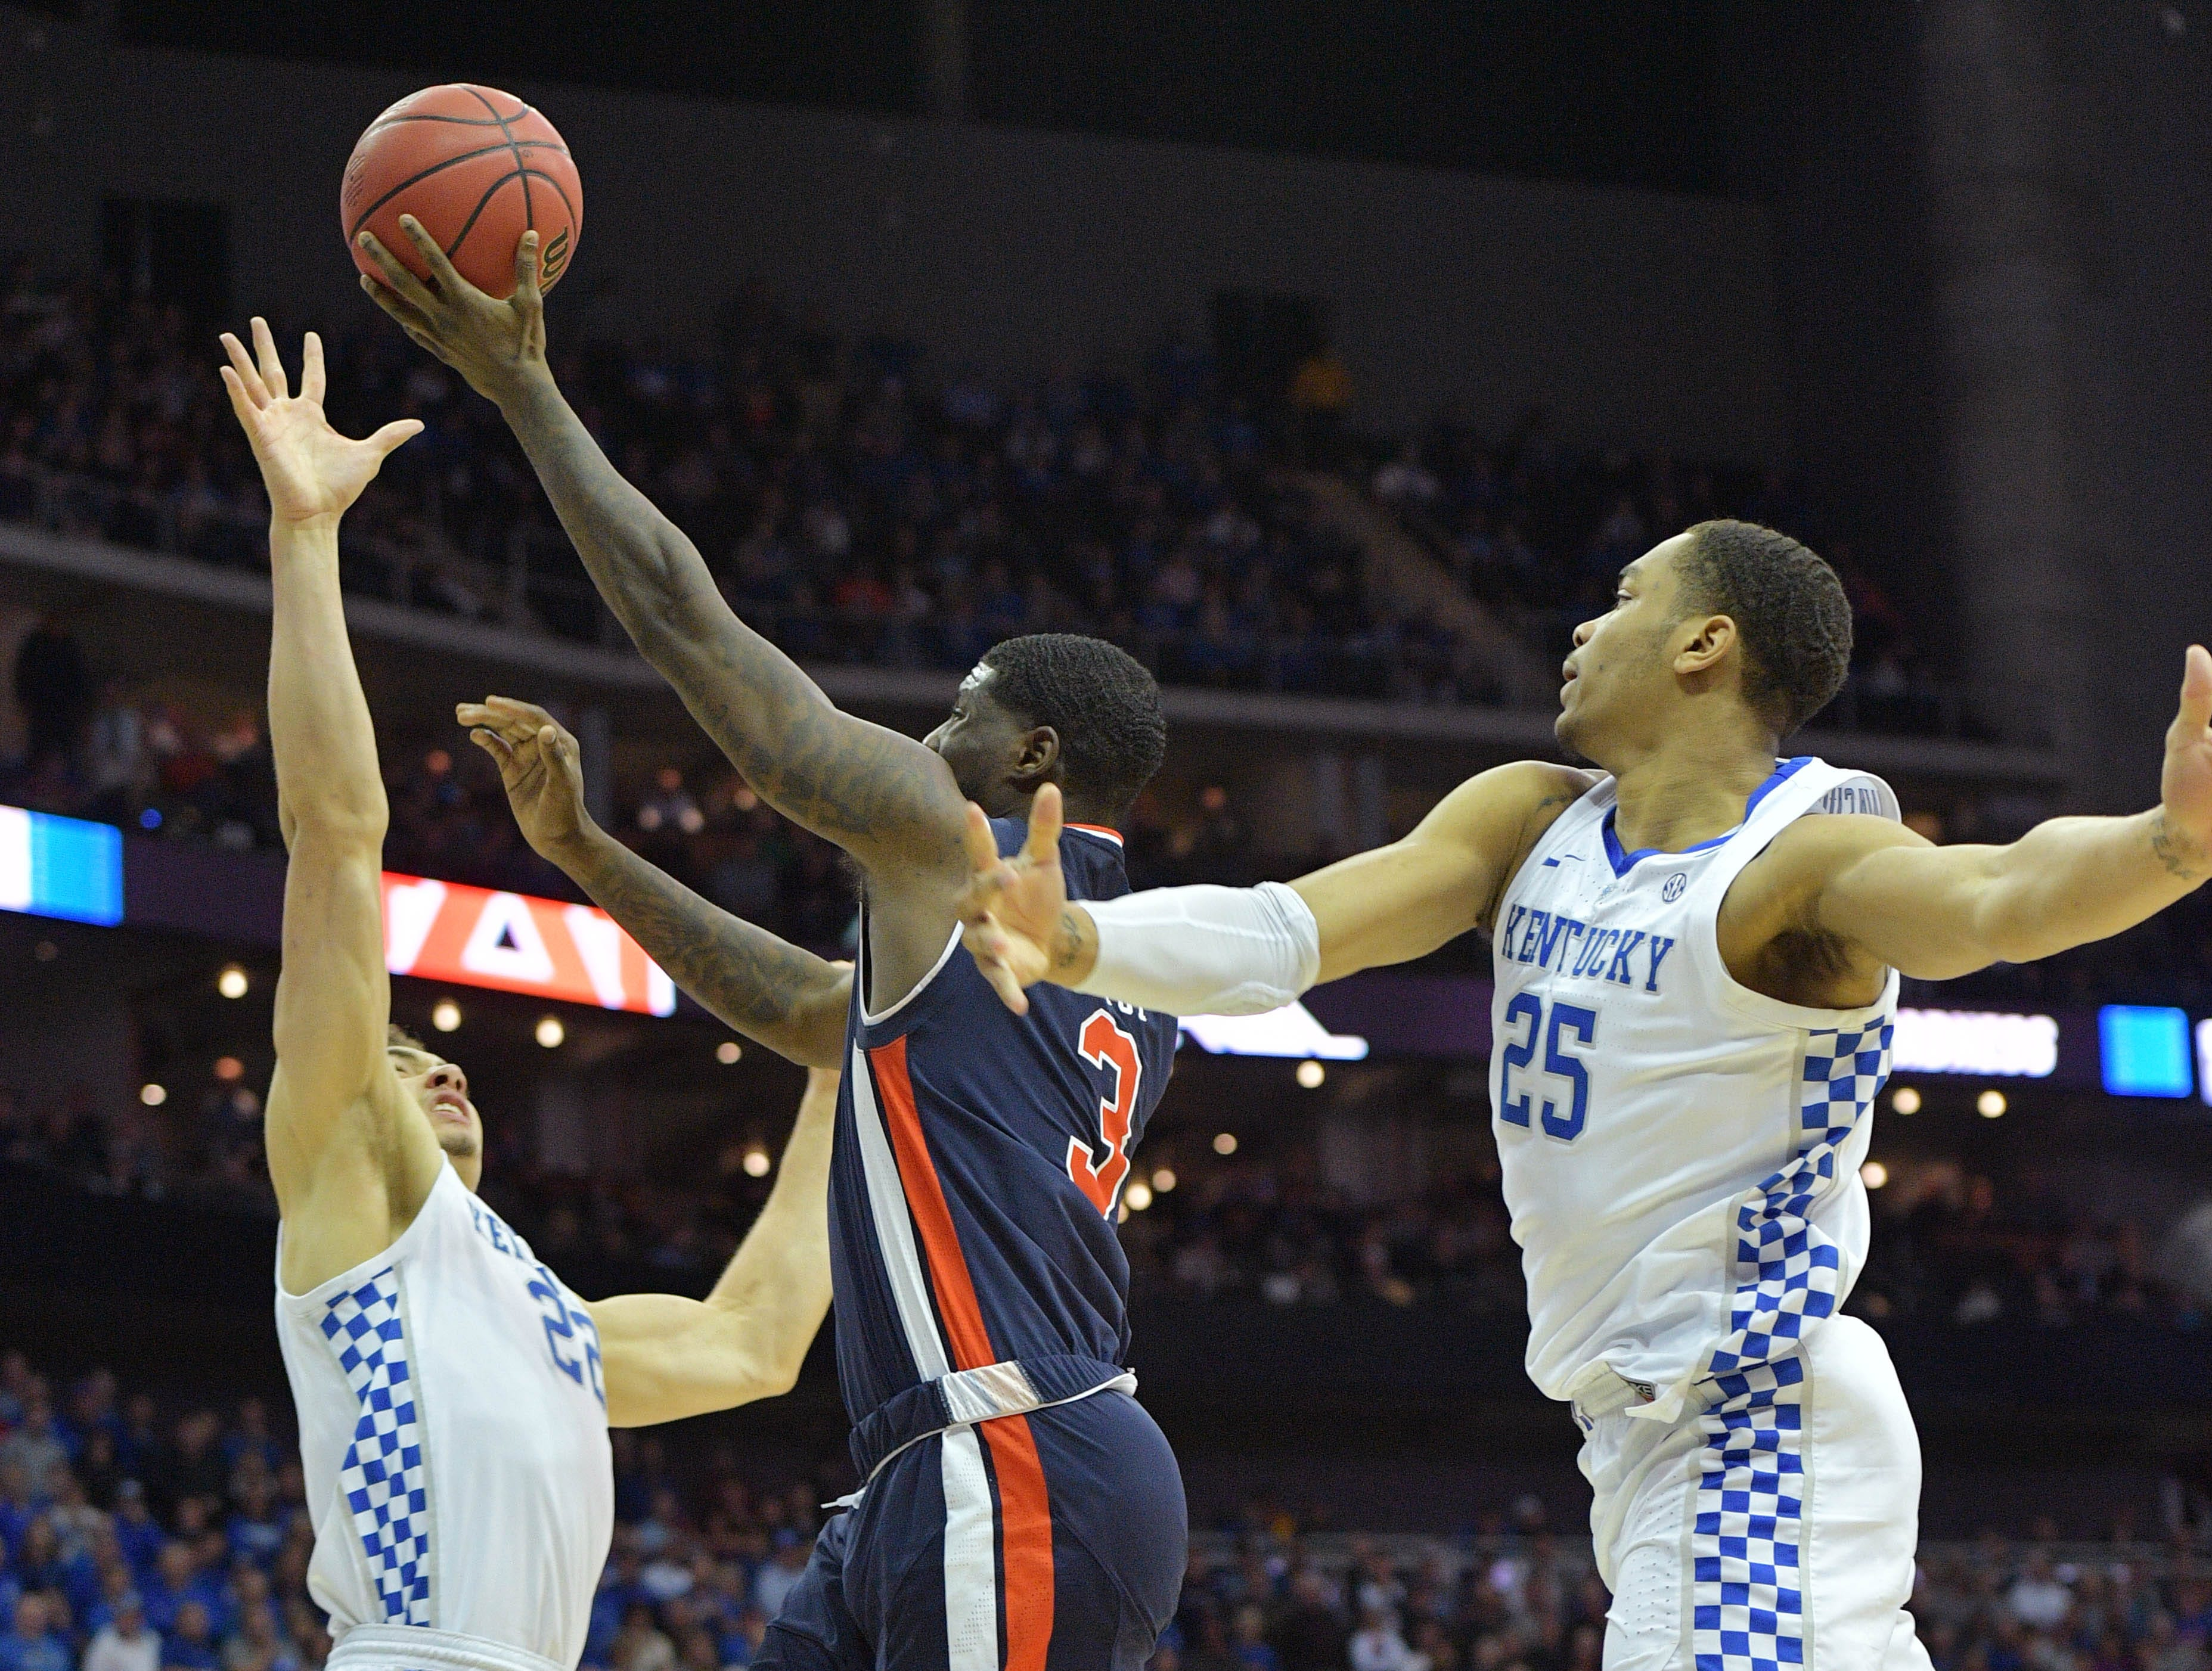 Mar 31, 2019; Kansas City, MO, United States; Auburn Tigers forward Danjel Purifoy (3) shoots against Kentucky Wildcats forward PJ Washington (25) and forward Reid Travis (22) during the second half in the championship game of the midwest regional of the 2019 NCAA Tournament at Sprint Center. Mandatory Credit: Denny Medley-USA TODAY Sports